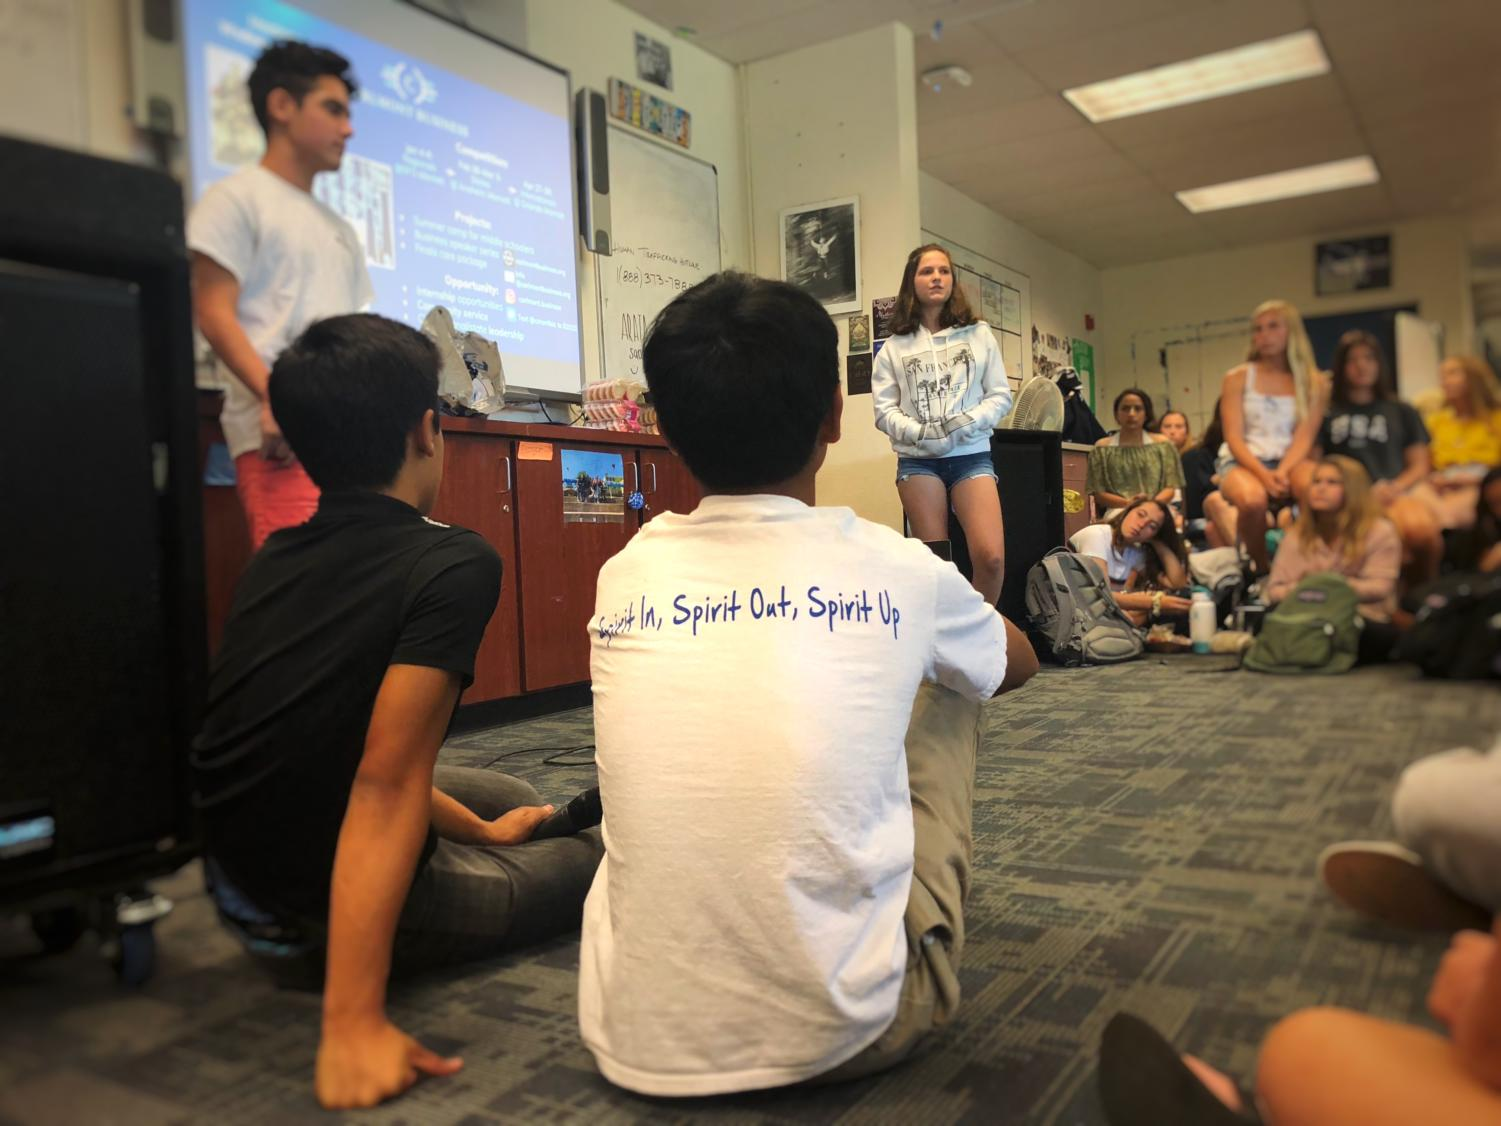 Carlmont's freshman class gathers in the ASB room during lunch to discuss upcoming spirit events and new opportunities for student involvement.